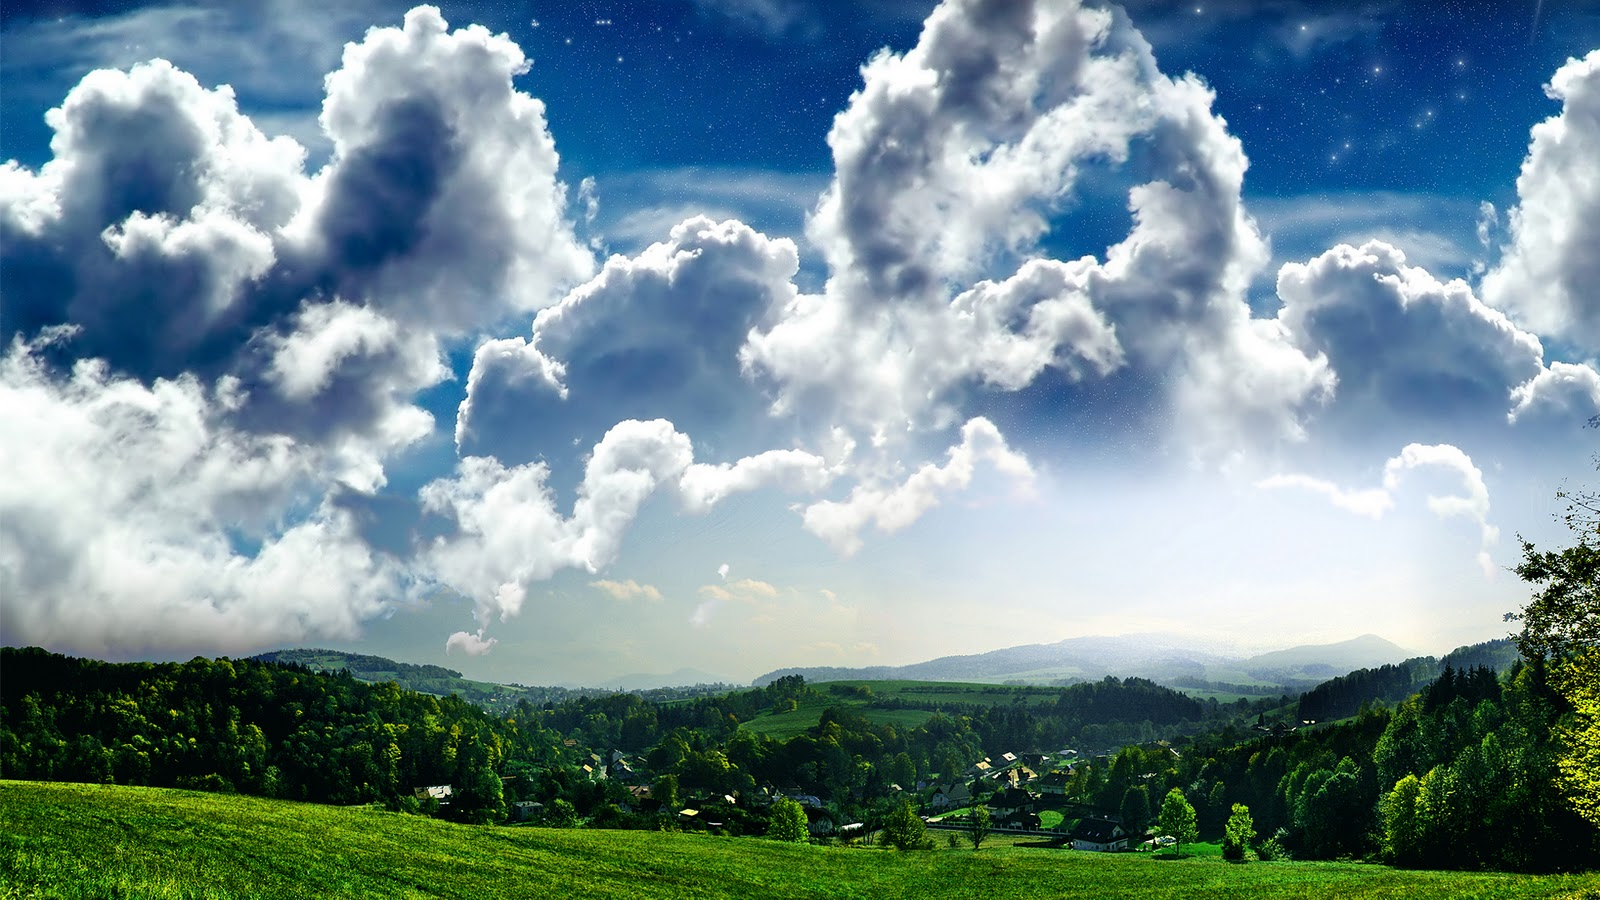 Sky Cloud Wallpapers Hd: Hd Wallpapers For Desktop: Sky Cloud Wallpapers Hd